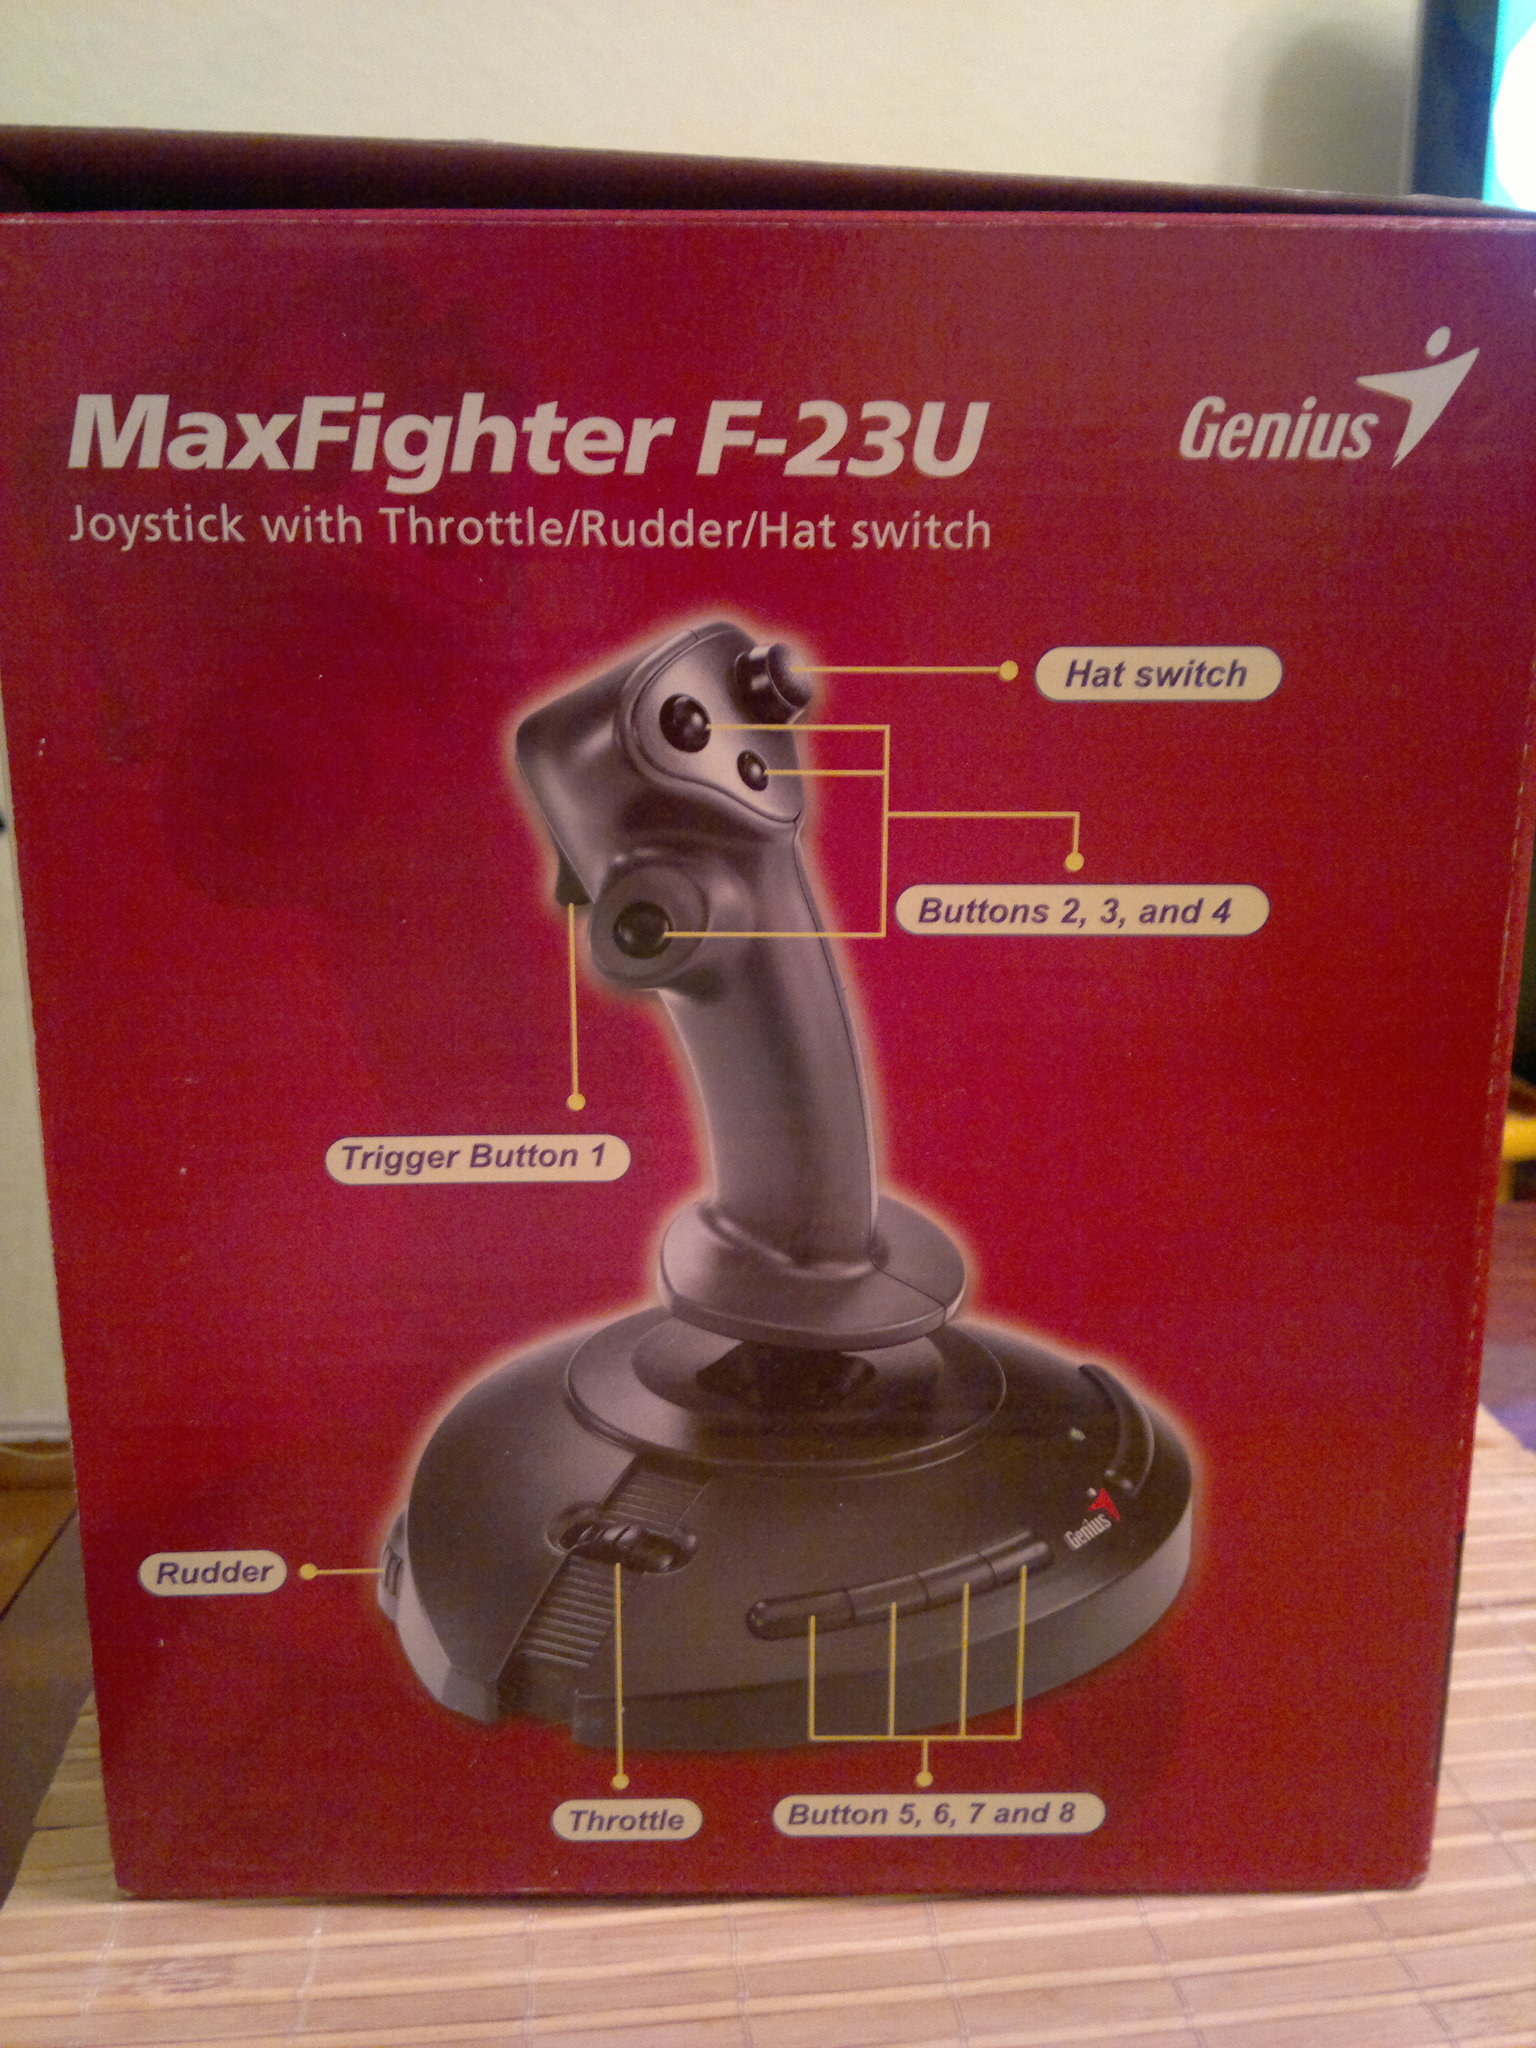 Джойстик genius maxfighter f-23u